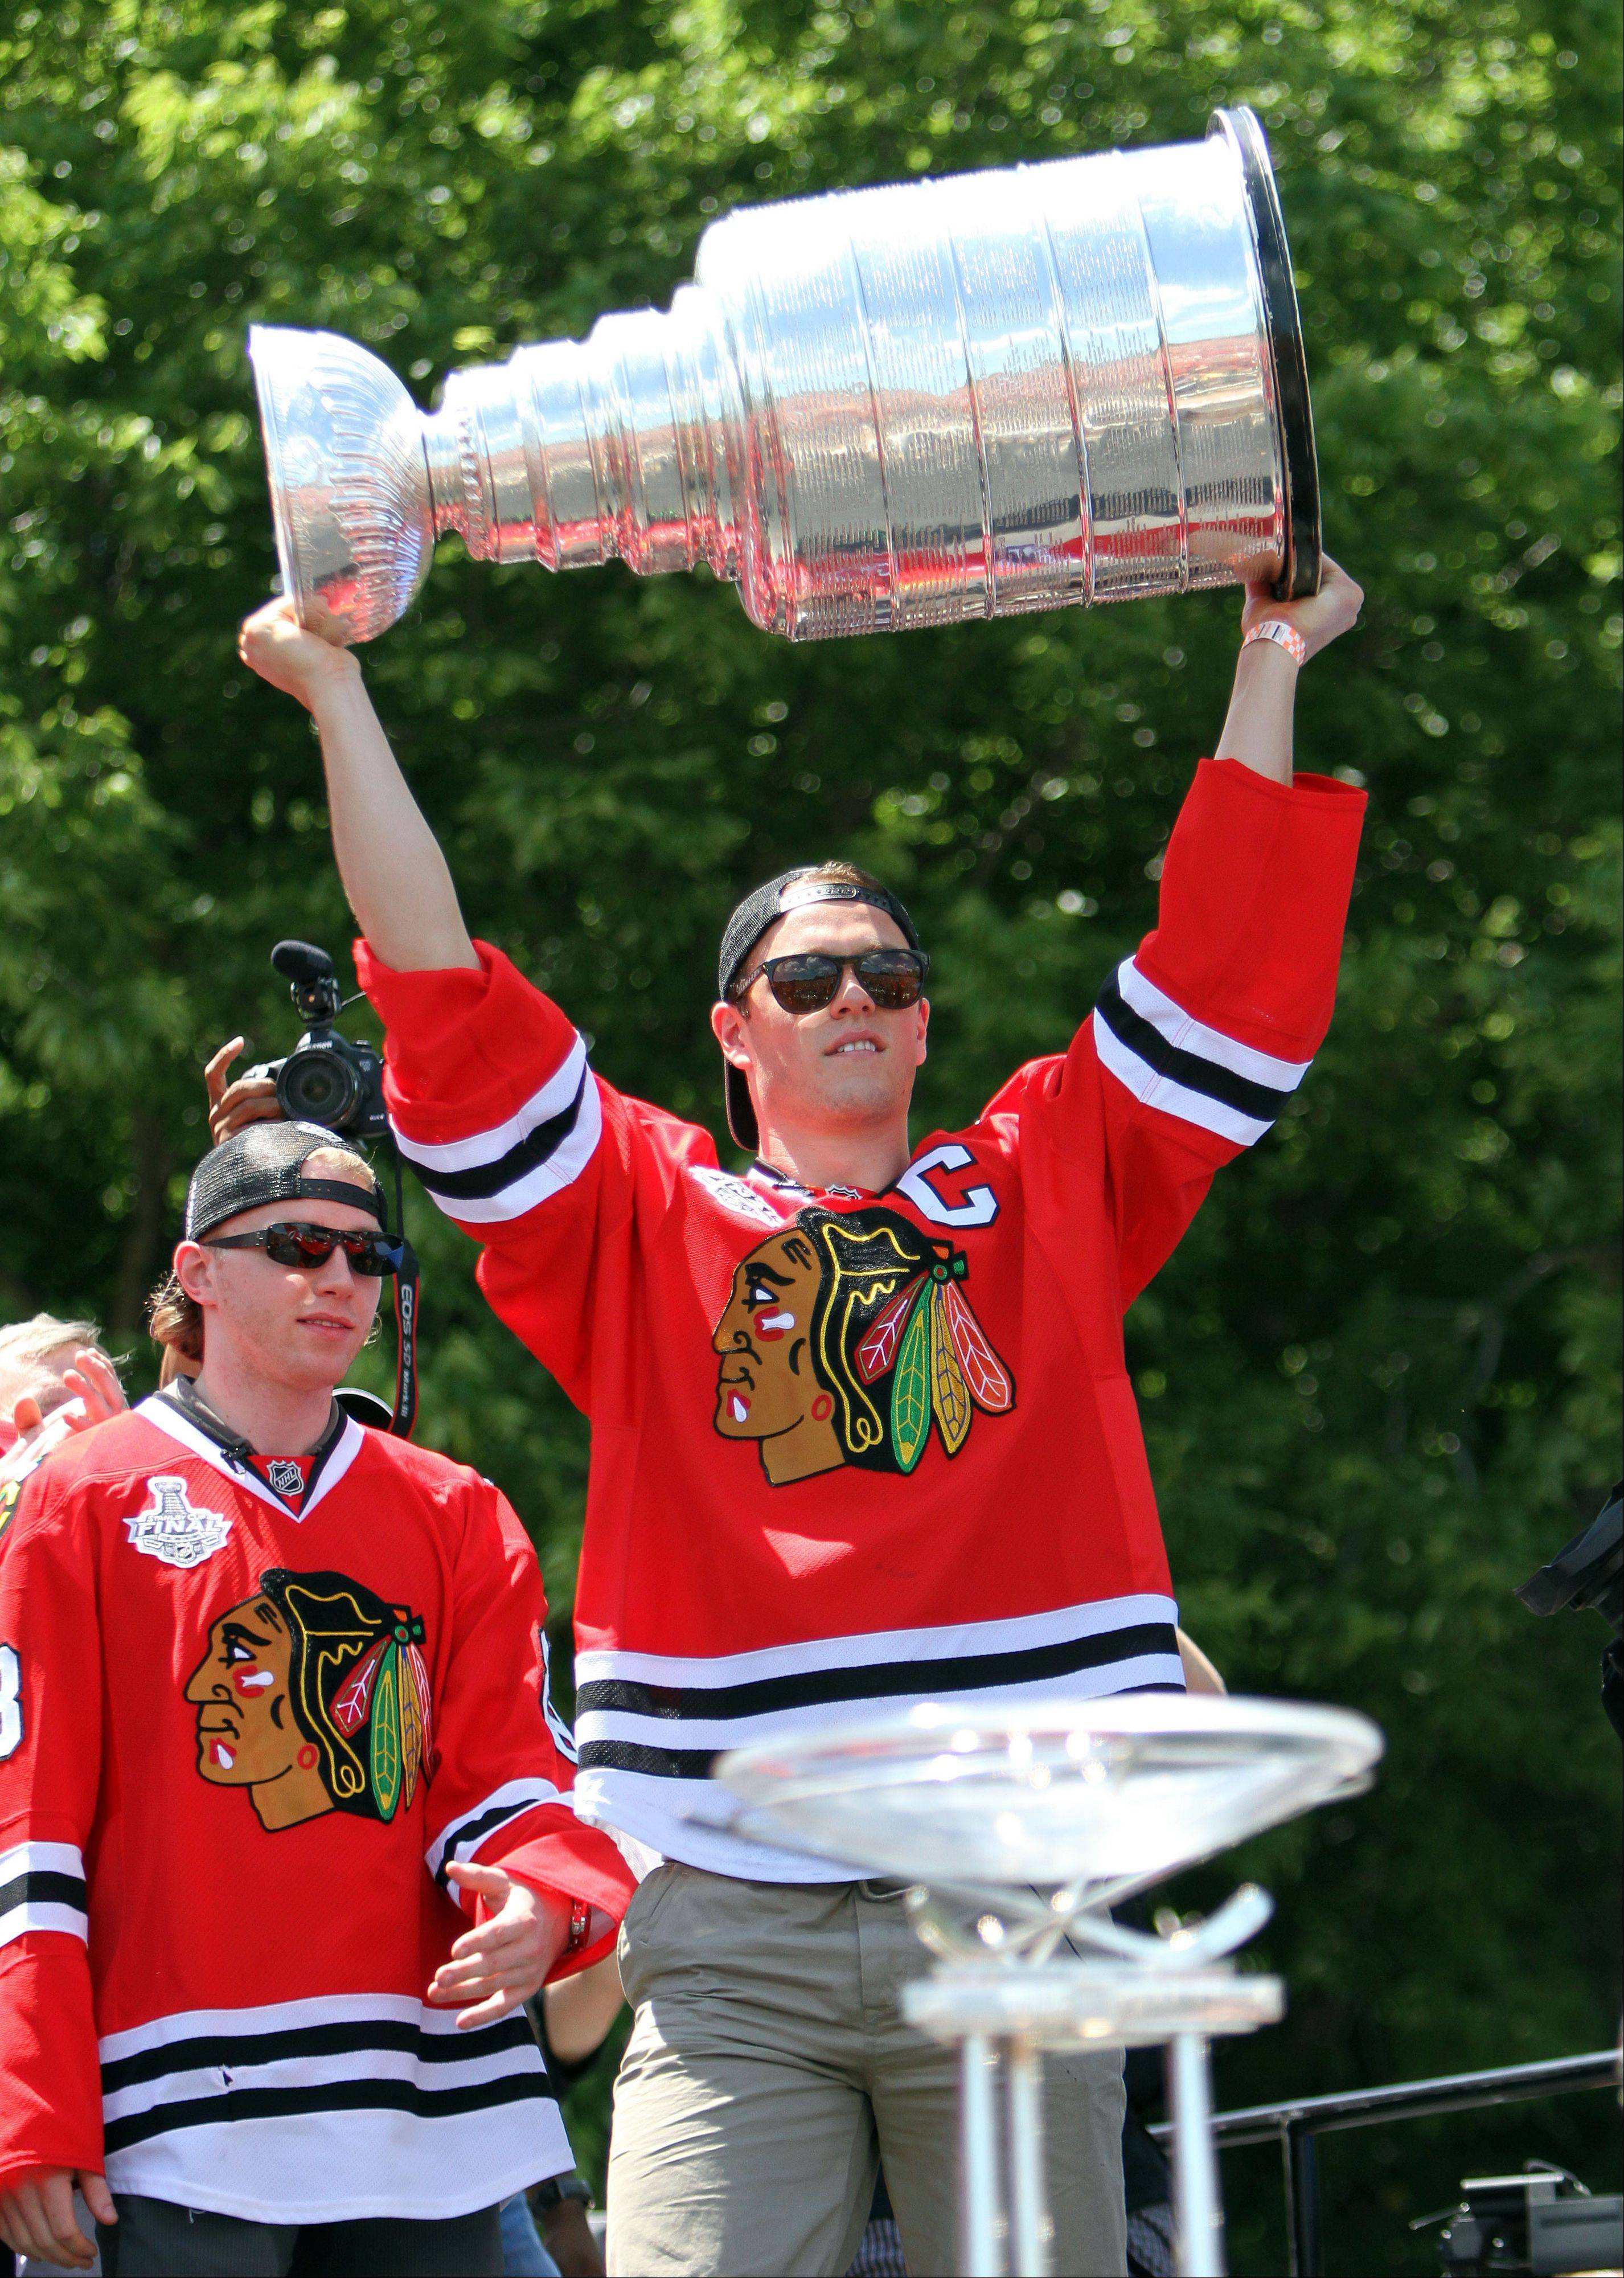 Steve Lundy/slundy@dailyherald.comChicago Blackhawks center Jonathan Toews carries in the Stanley Cup during the Blackhawks Stanley Cup rally at Hutchinson Field in Chicago Friday morning.